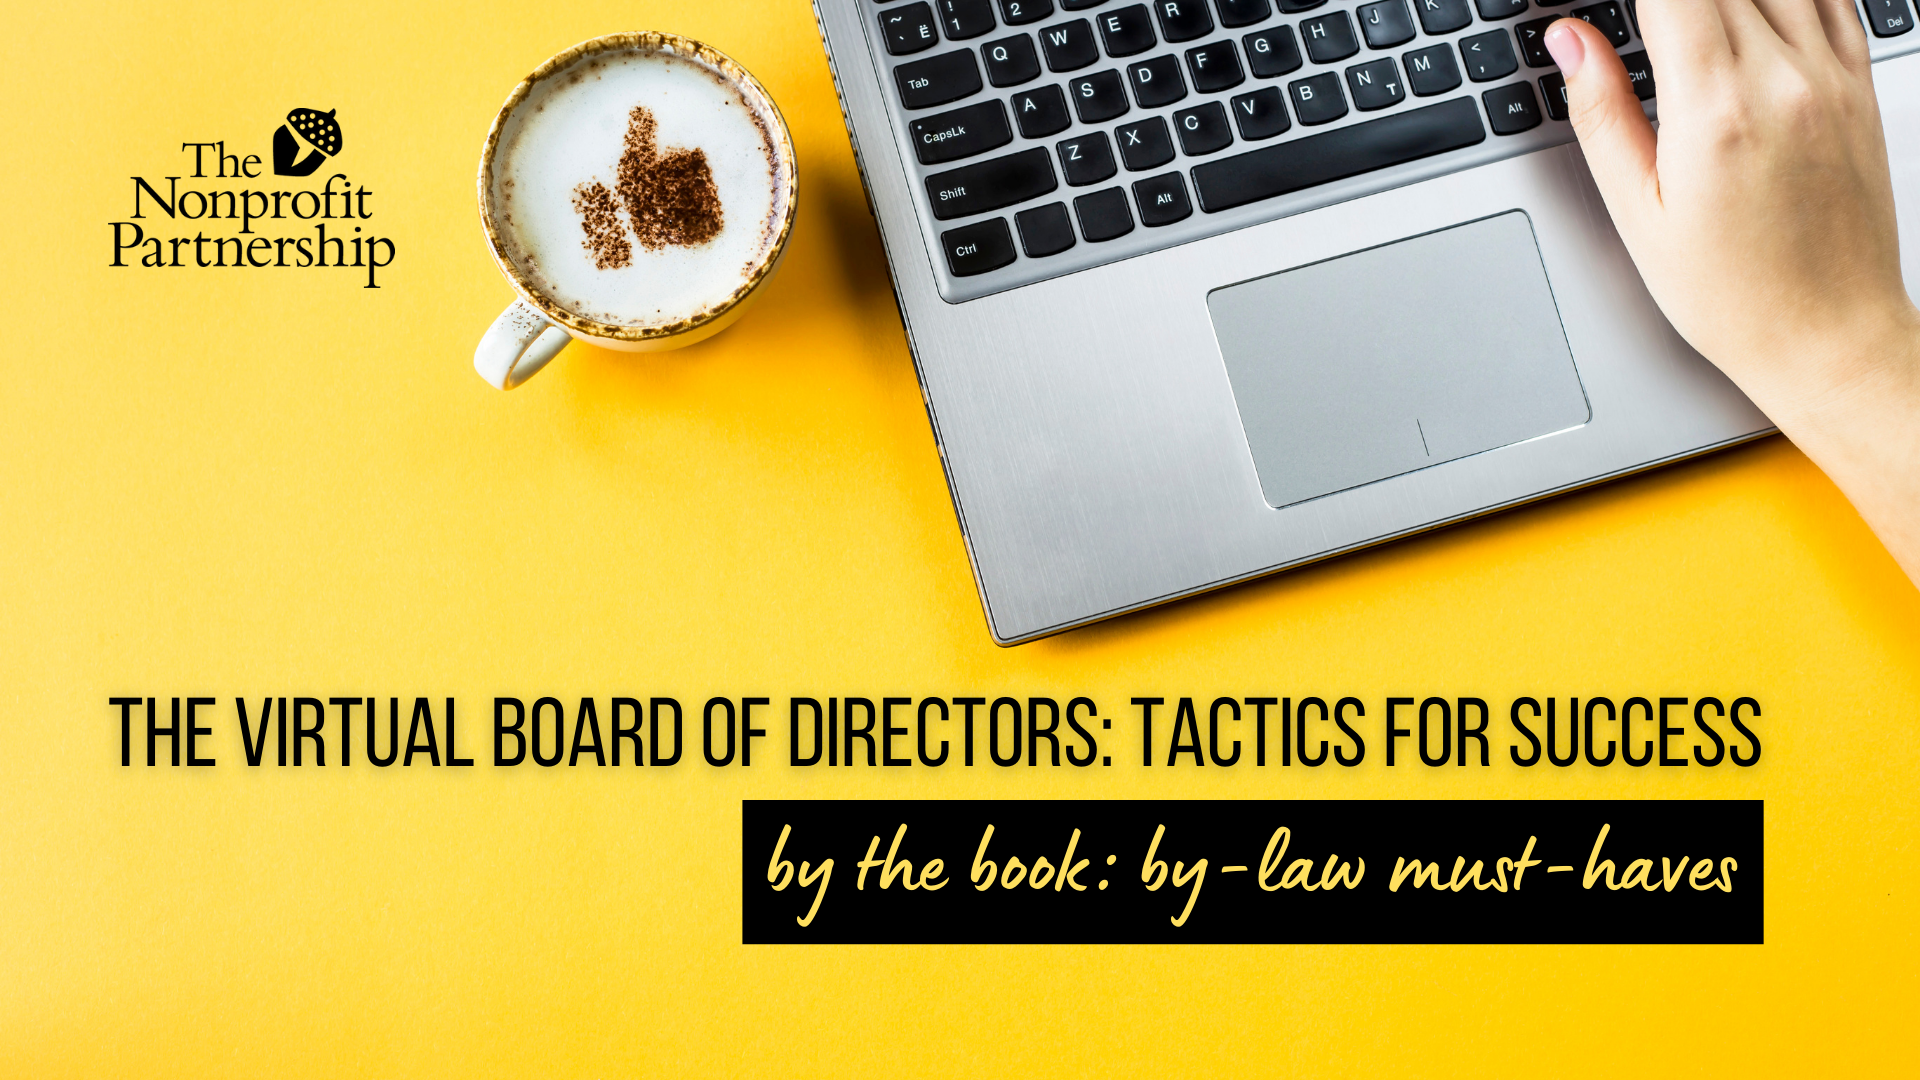 [Zoom Meeting] The Virtual Board of Directors: Tactics for Success - Board Meetings 101: By-Law Must-Haves